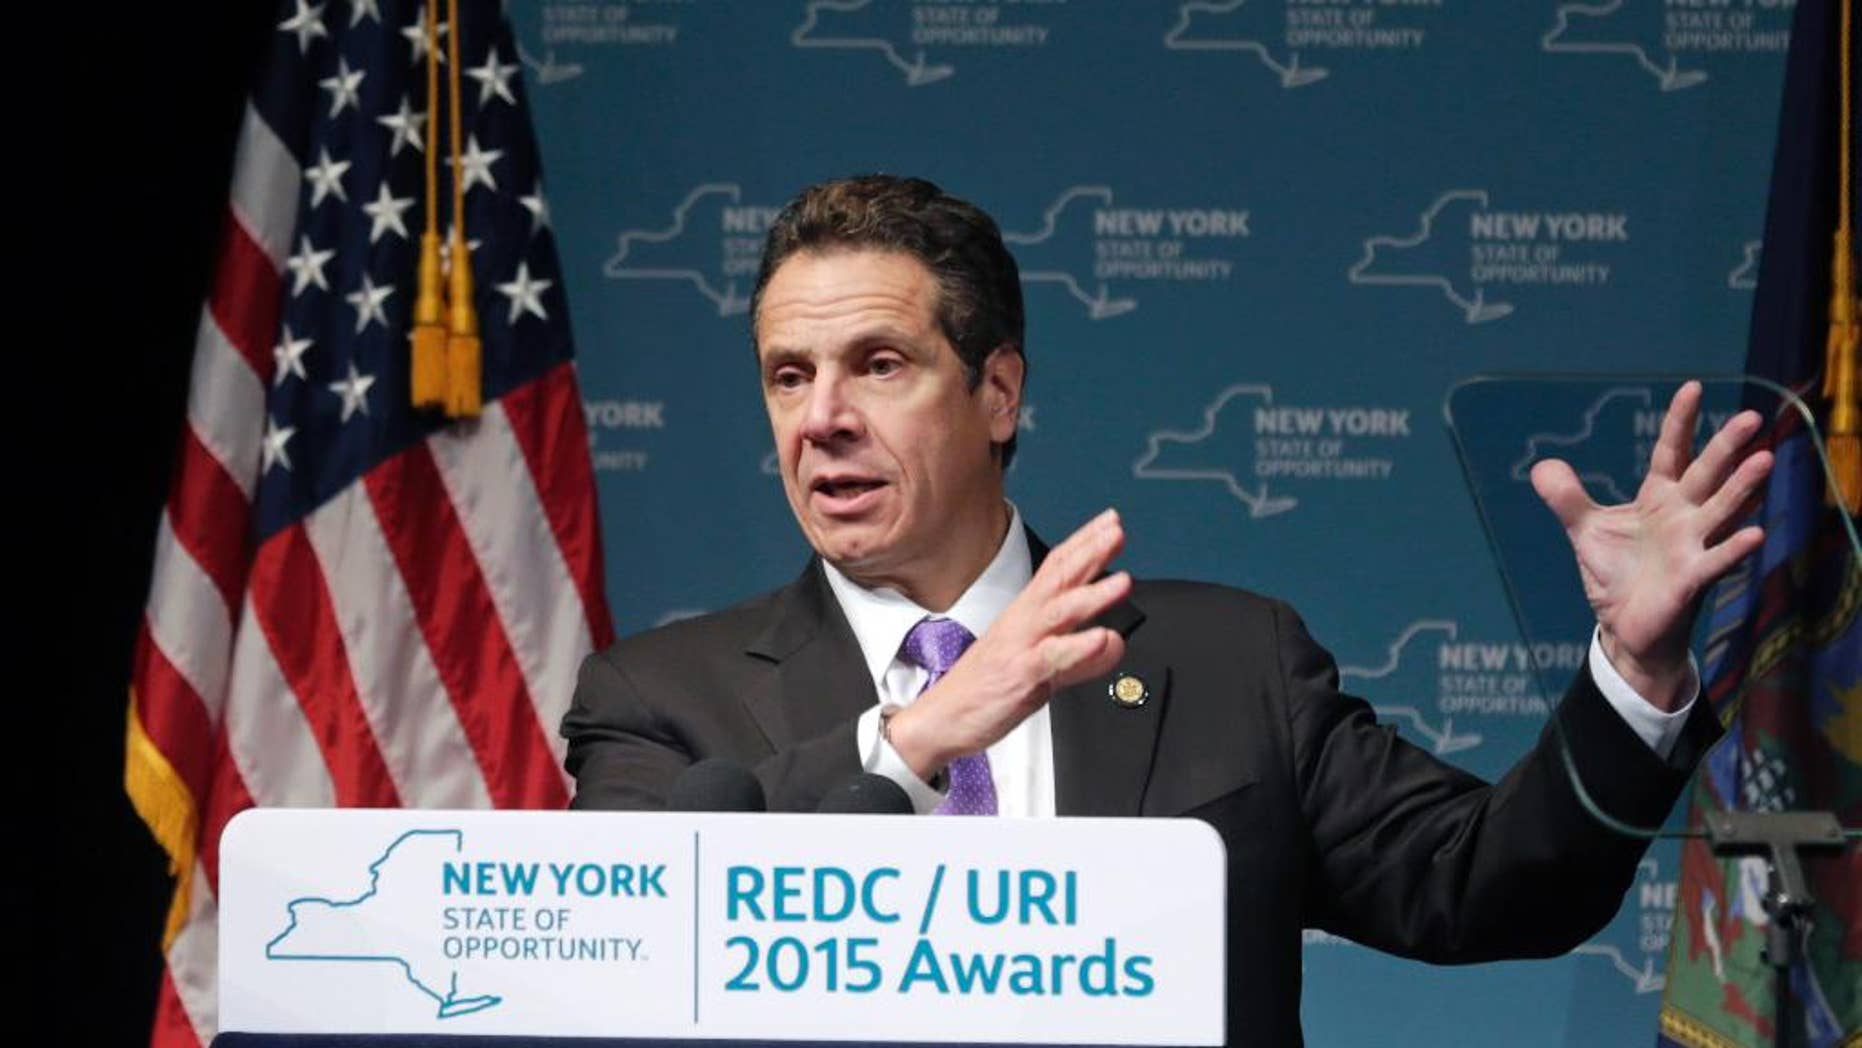 """FILE - In this Dec. 10, 2015, file photo, New York Gov. Andrew Cuomo speaks during an economic development awards ceremony in Albany, N.Y. After the NYCLU filed its lawsuit in 2011, Cuomo saw it as an opportunity to improve New York's prison standards and instructed his staff to negotiate. New York prison officials agreed Wednesday, Dec. 16, 2015, to overhaul their use of solitary confinement, offering a broad slate of reforms aimed at reducing the number of inmates sent to """"the box,"""" limiting the amount of time they can spend there and providing counseling to help long-term solitary inmates adjust to life on the outside. (AP Photo/Mike Groll, File)"""